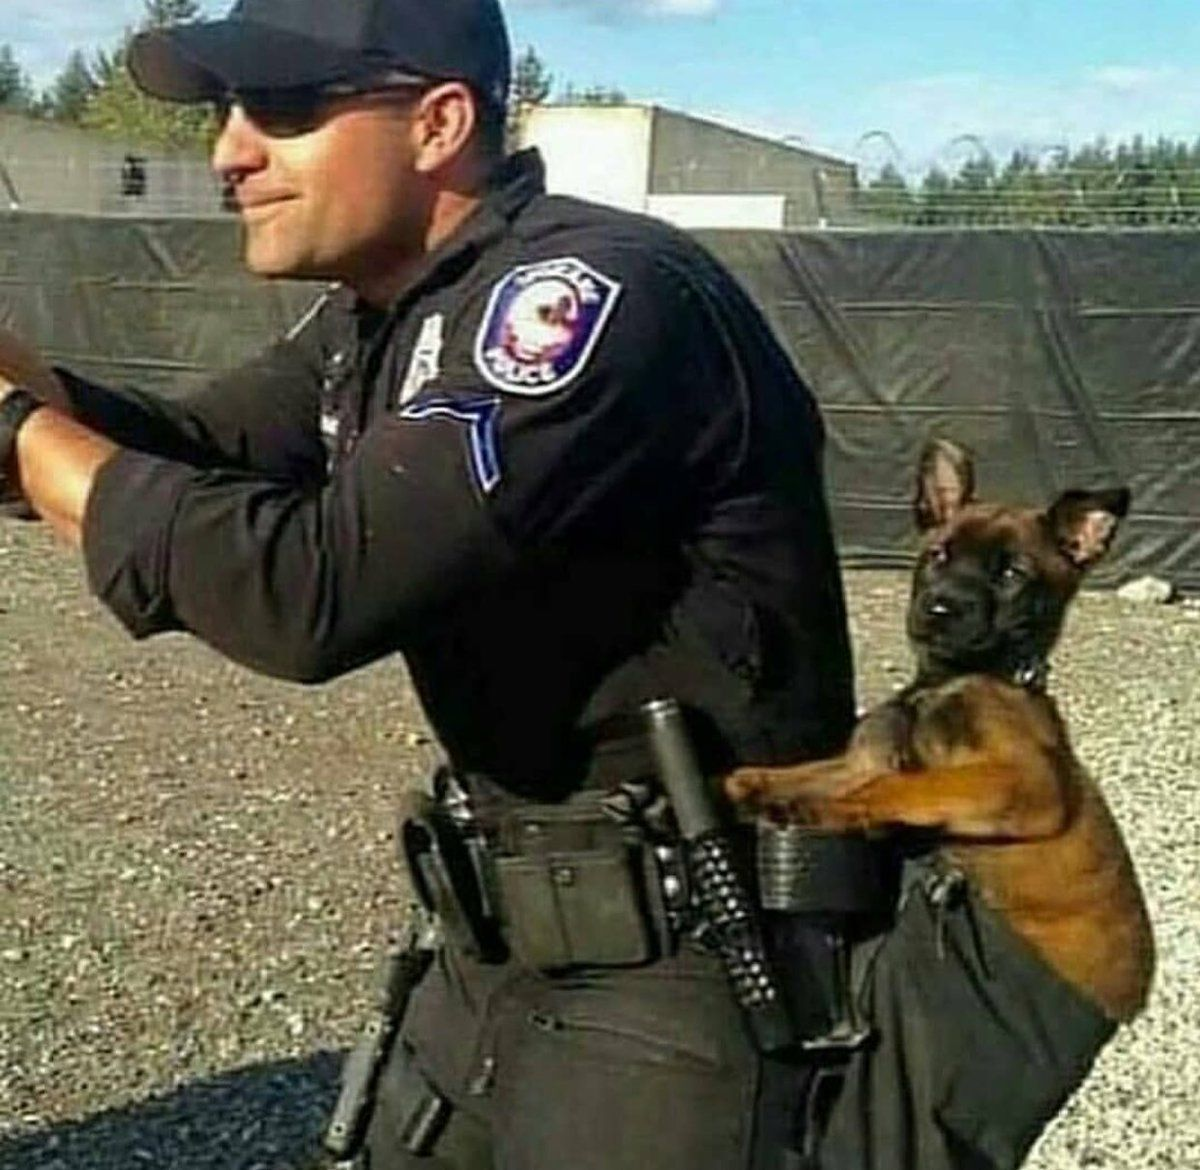 Pin By Paula Whitney On Dog Lovers Club Malinois Dog Military Dogs Military Working Dogs